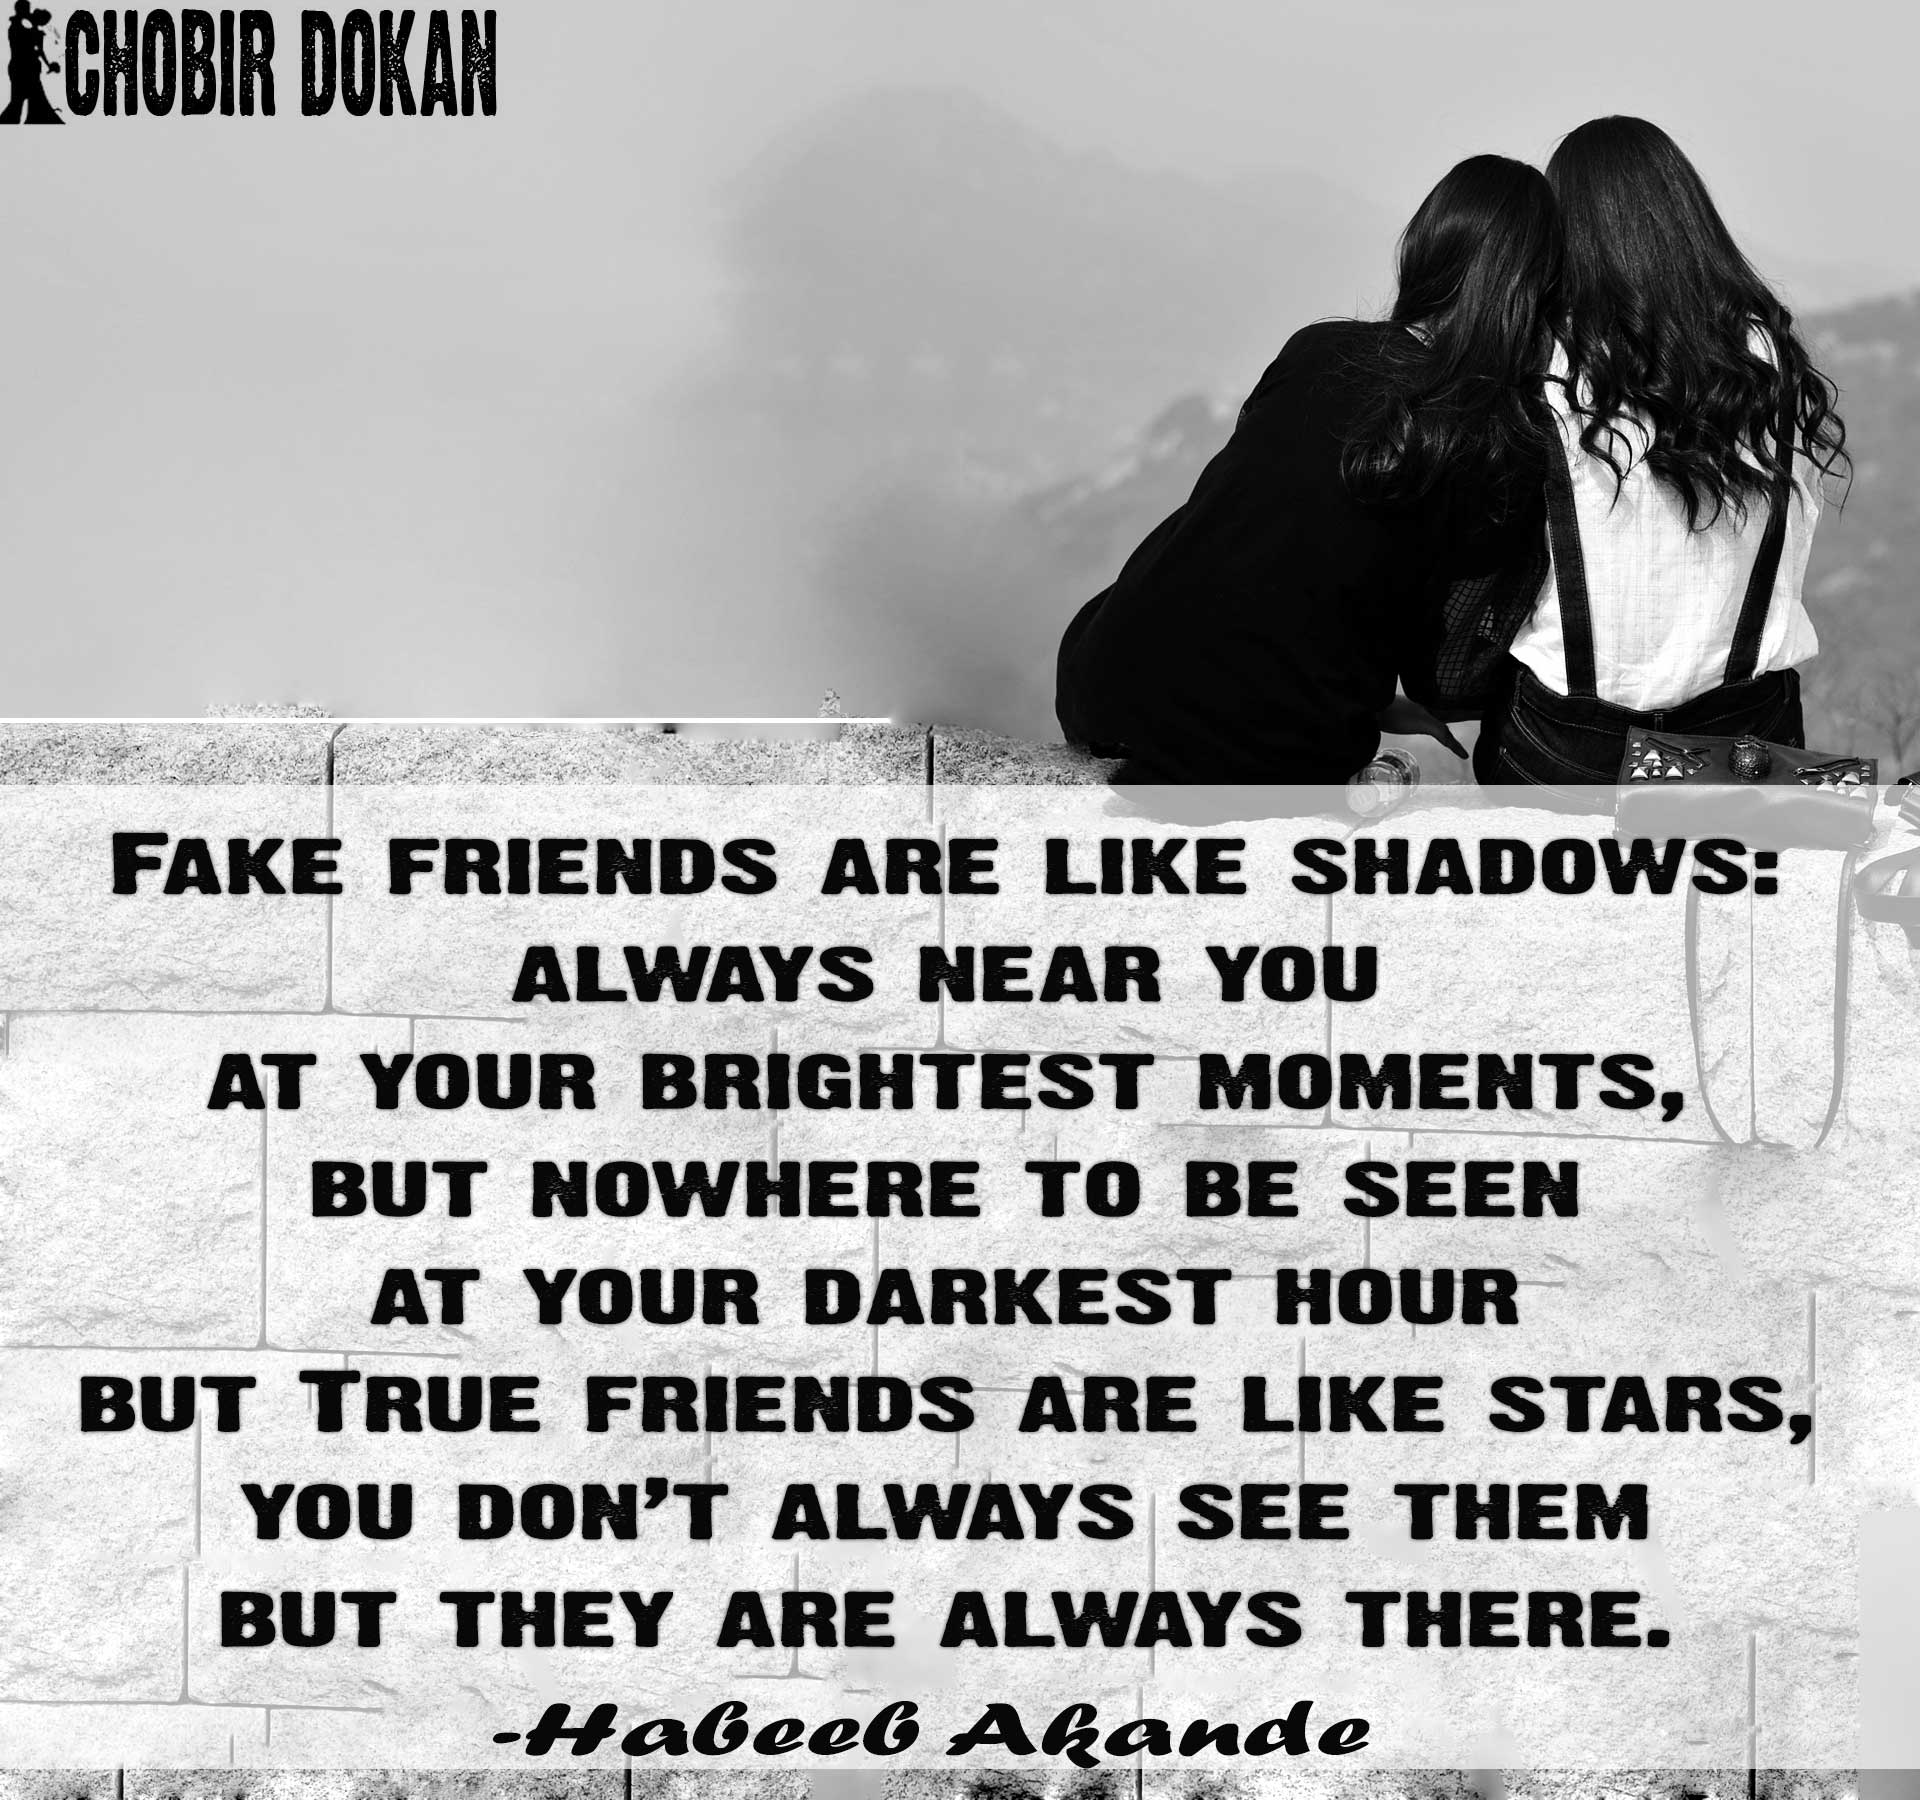 Quotes About Friendship Misunderstanding 28 Fake Friends Quotes Images For Facebook Quotes About Bad Friends